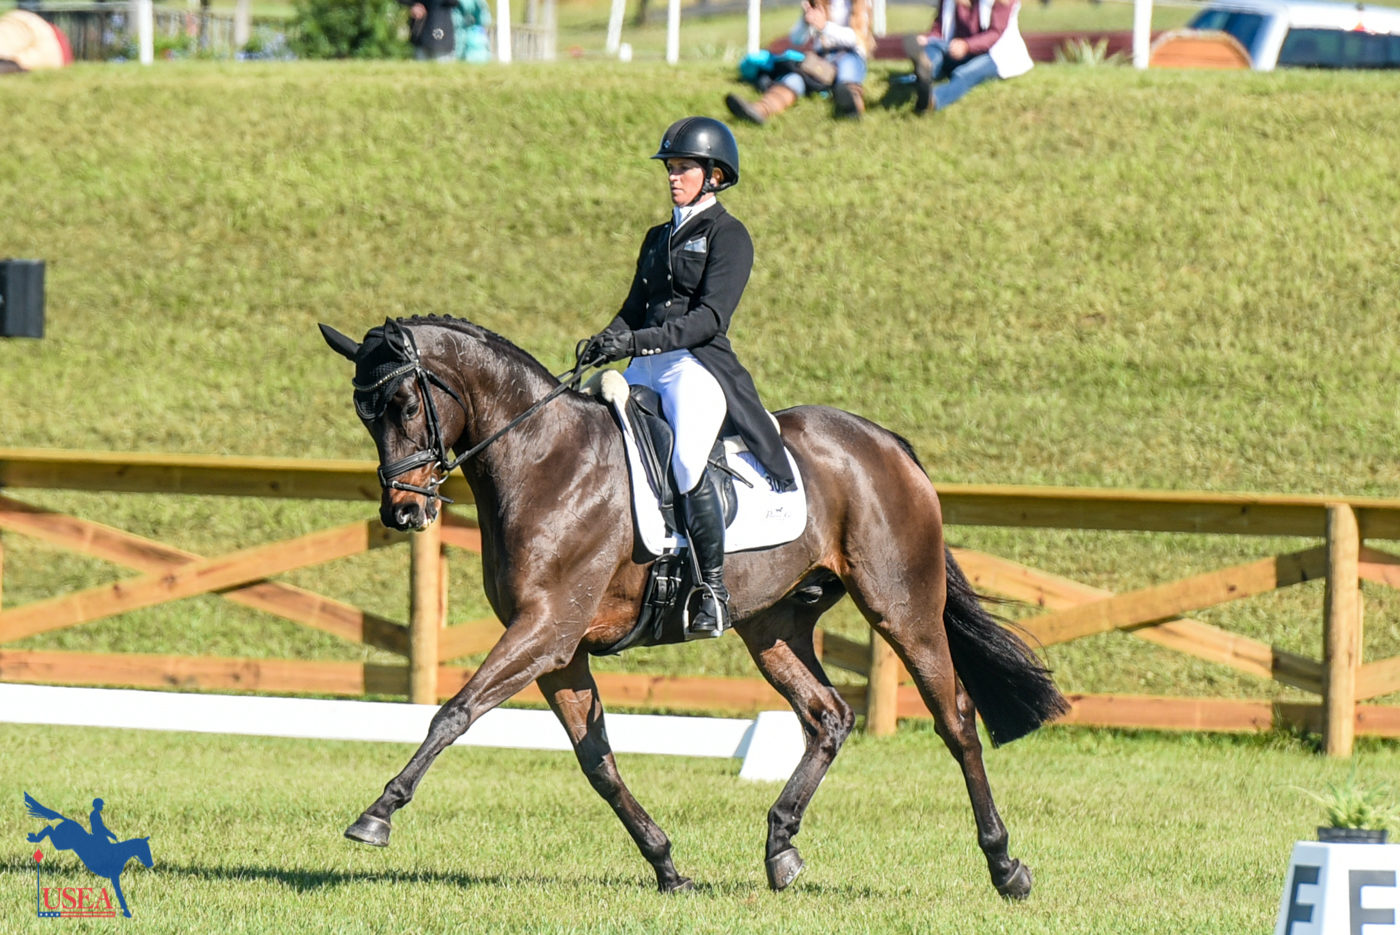 6thT - Erin Sylvester and Paddy the Caddy - 36.2